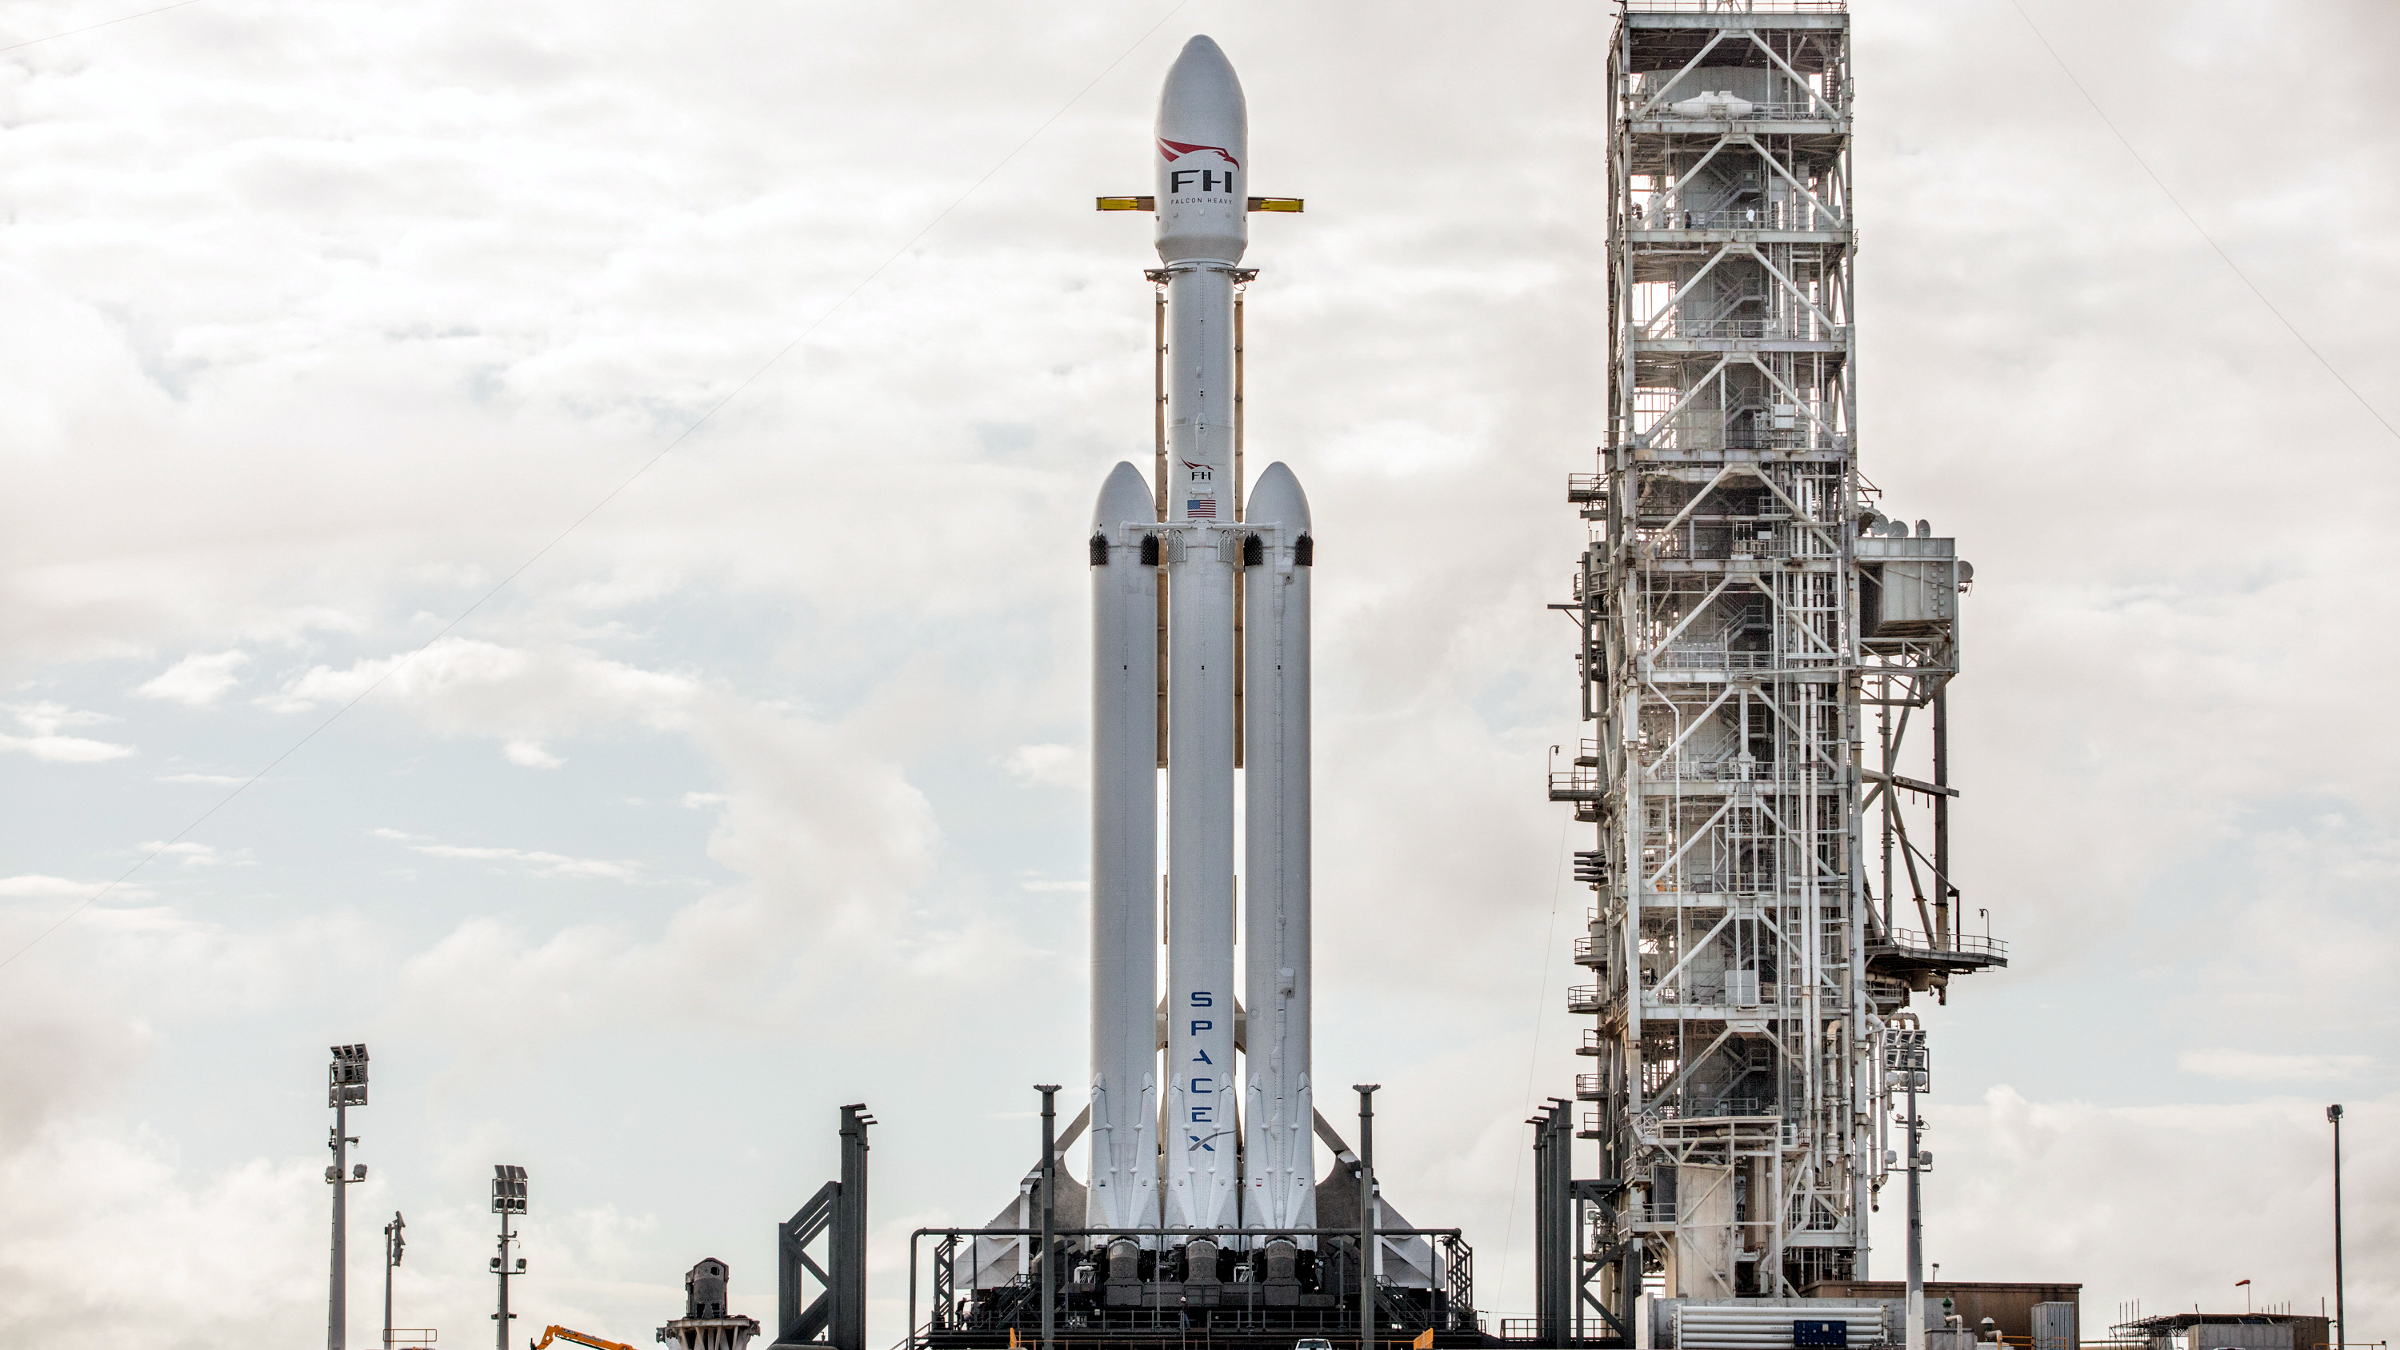 SpaceX's Falcon Heavy rocket on the launch pad at Kennedy Space Center.